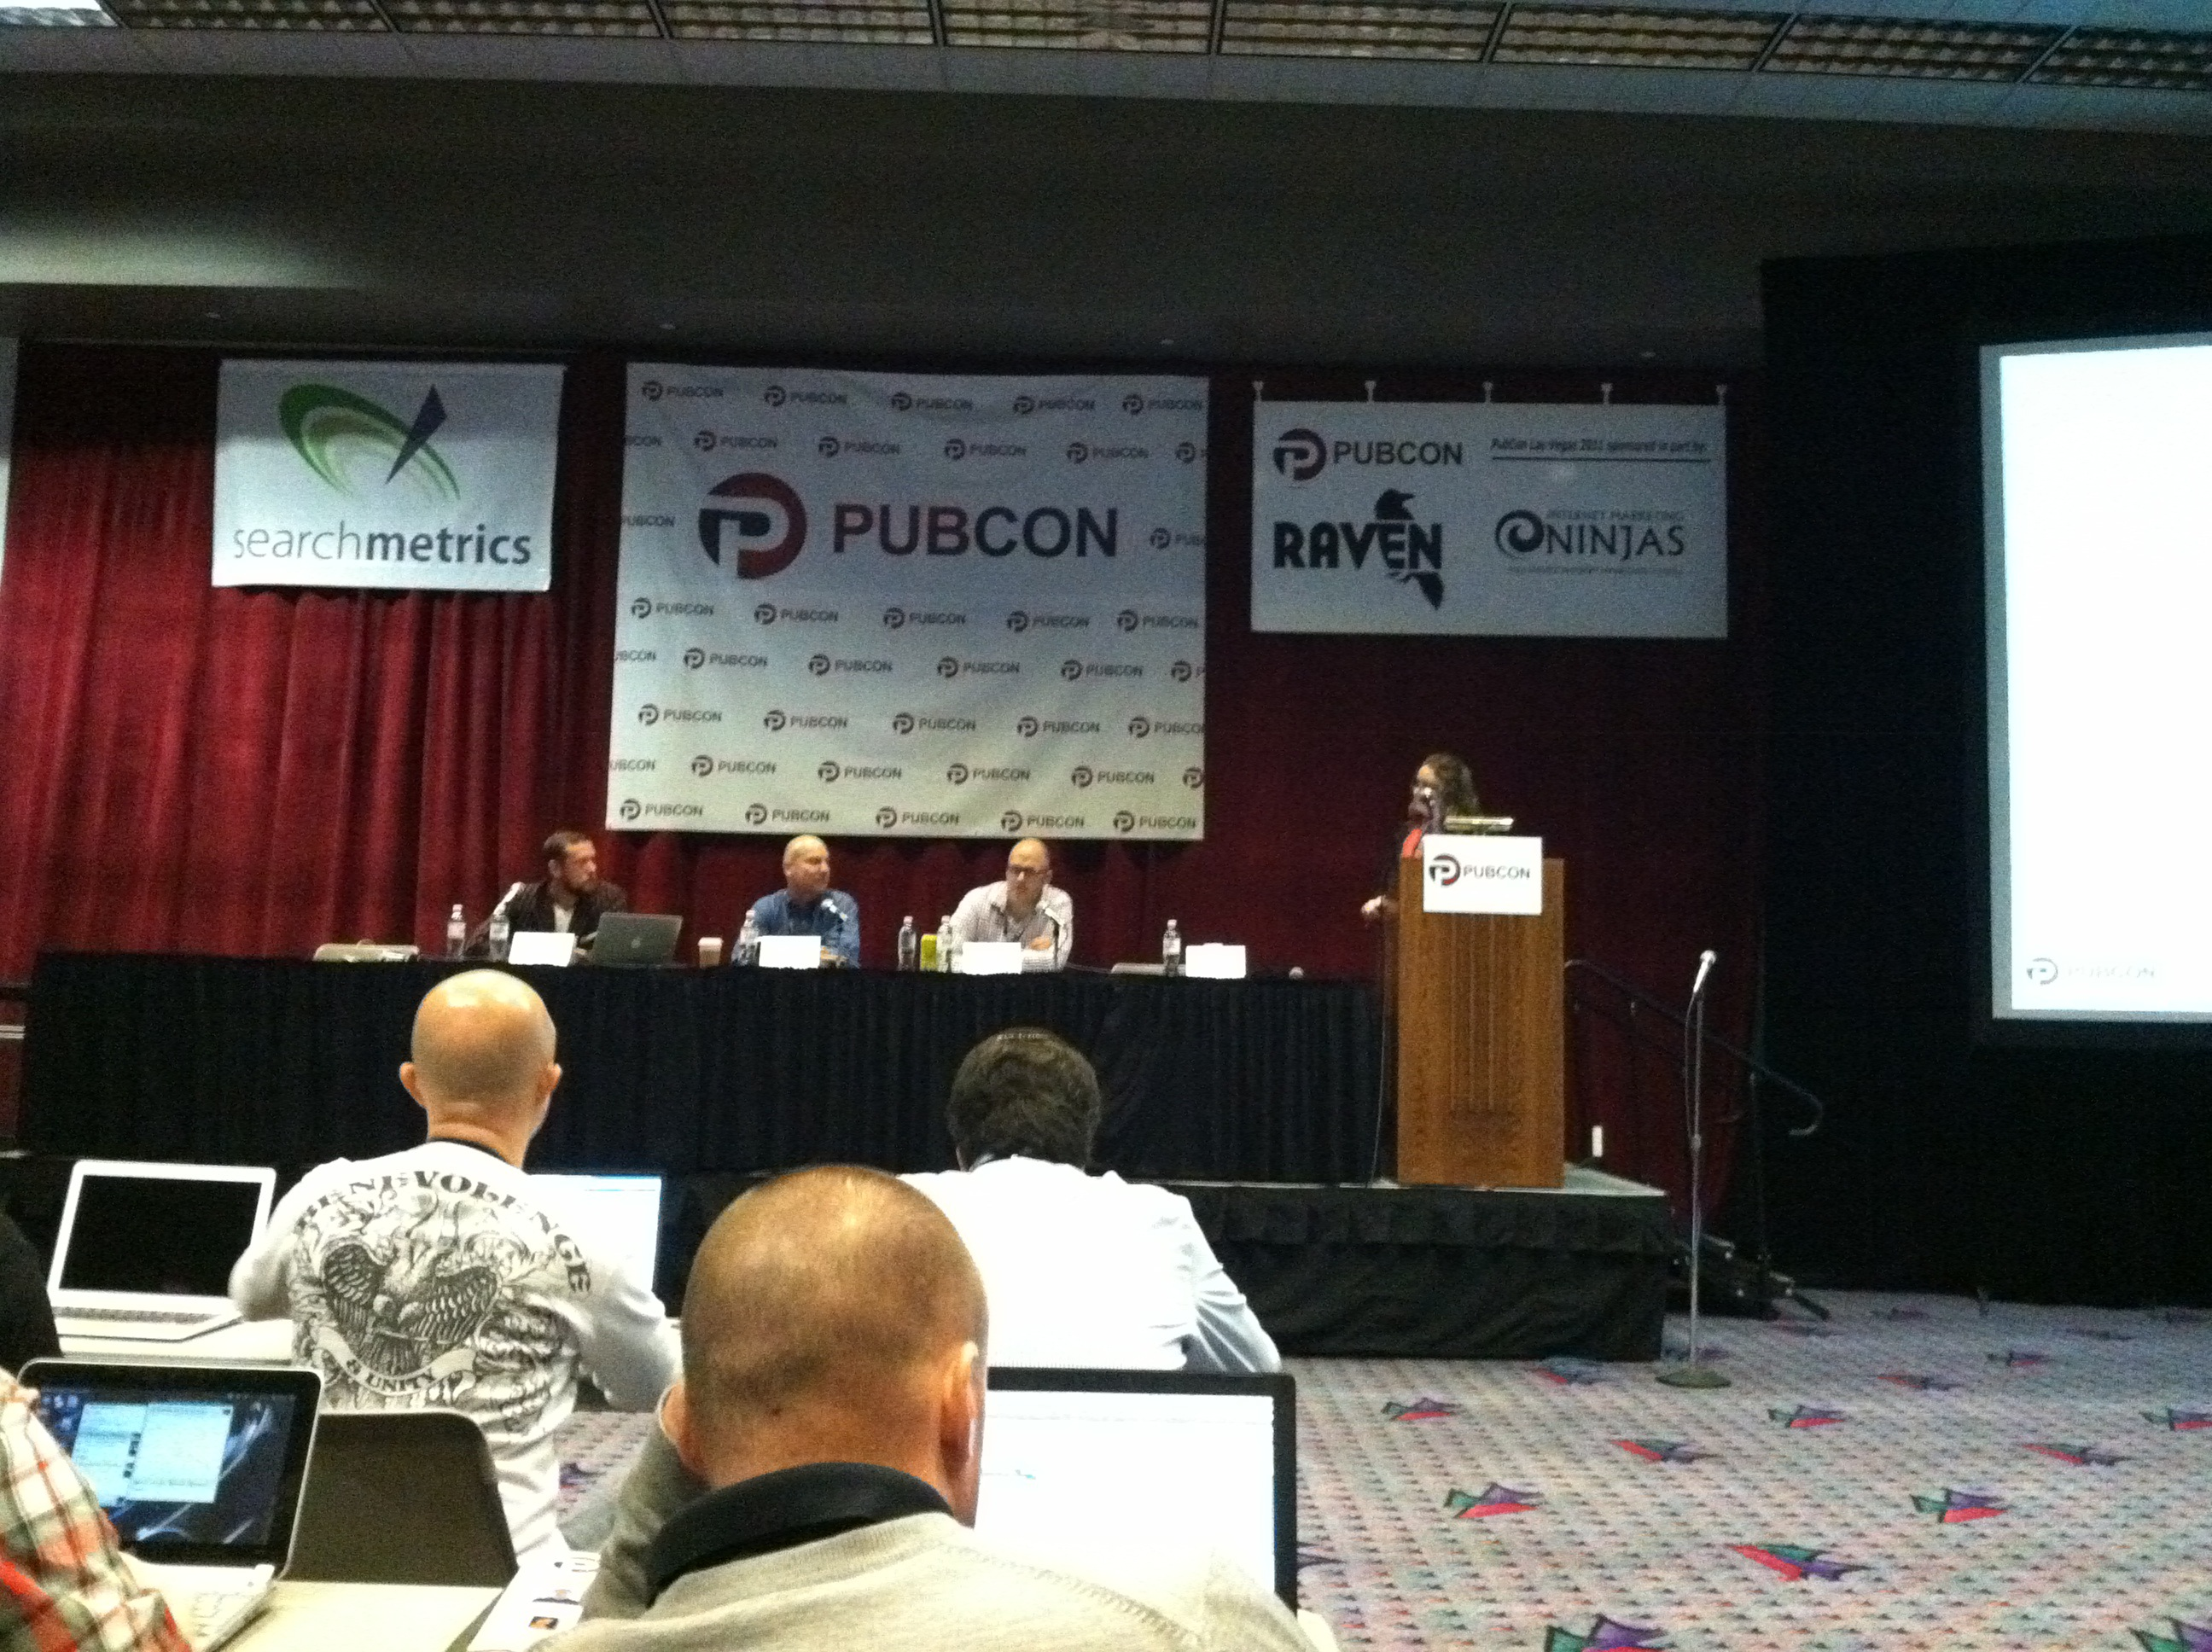 #pubcon Loren Baker on Building Links with Maximum Benefit and Minimum Risk